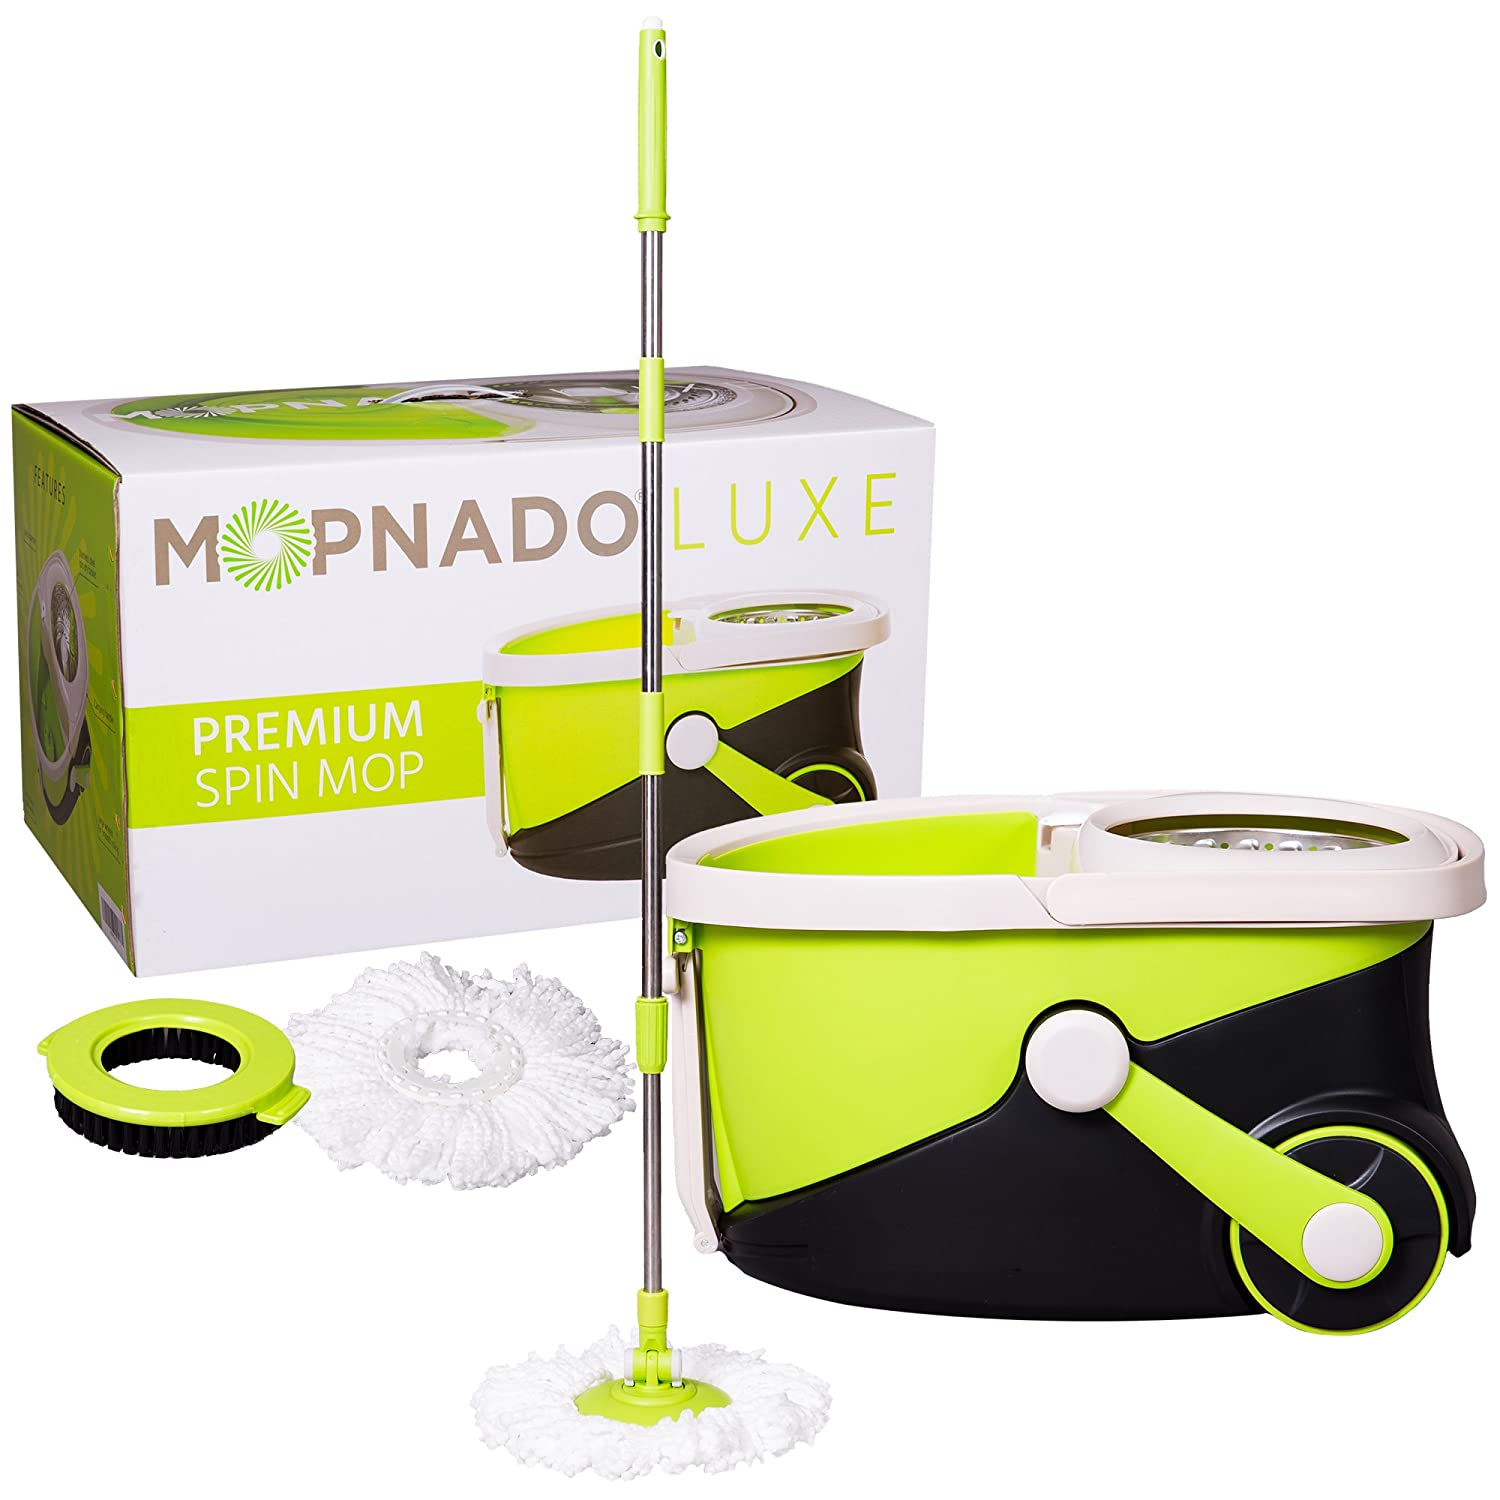 Floor Care & Maintenance: The 8 Best Mops, Mop Sets & Floor Cleaners - Reviewed 4